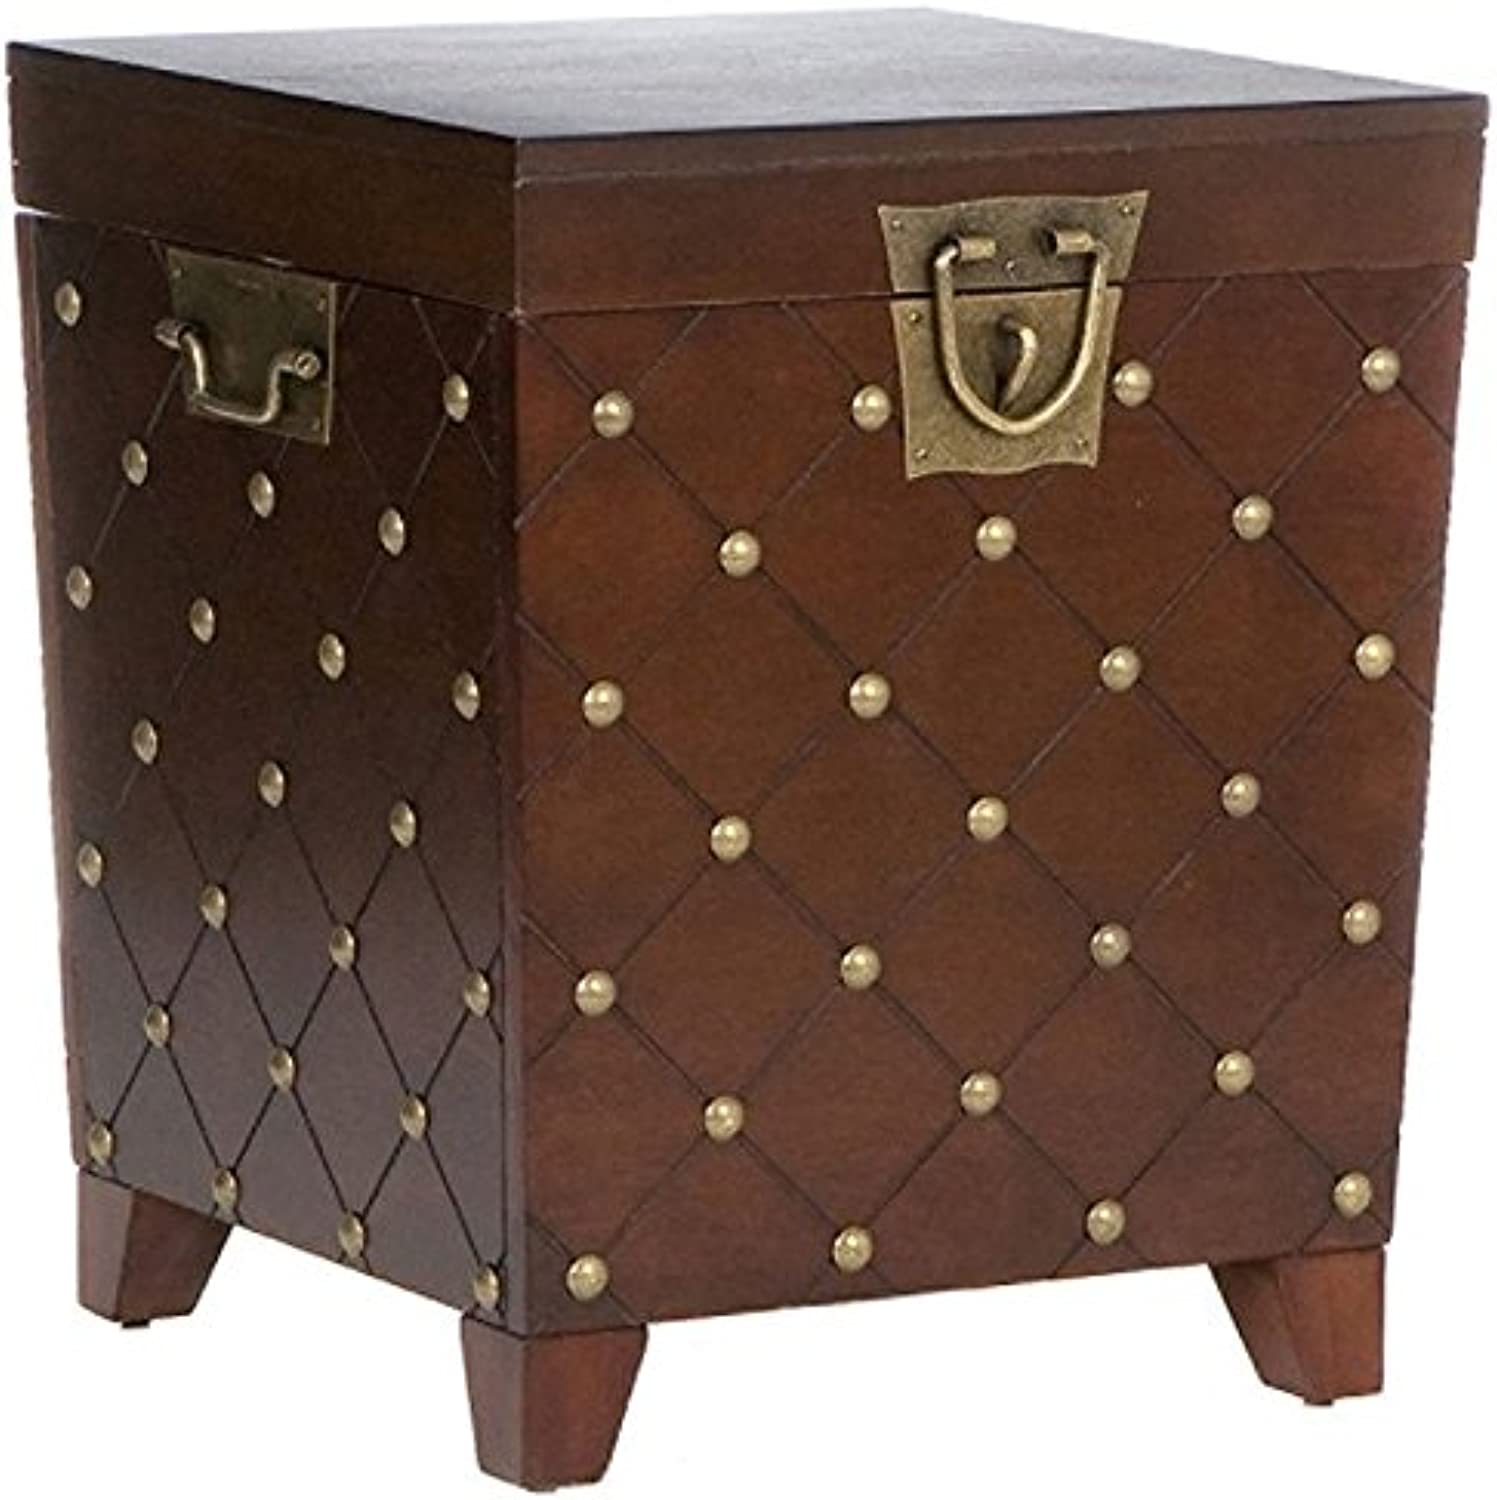 Southern Enterprises Espresso Nailhead End Table Trunk